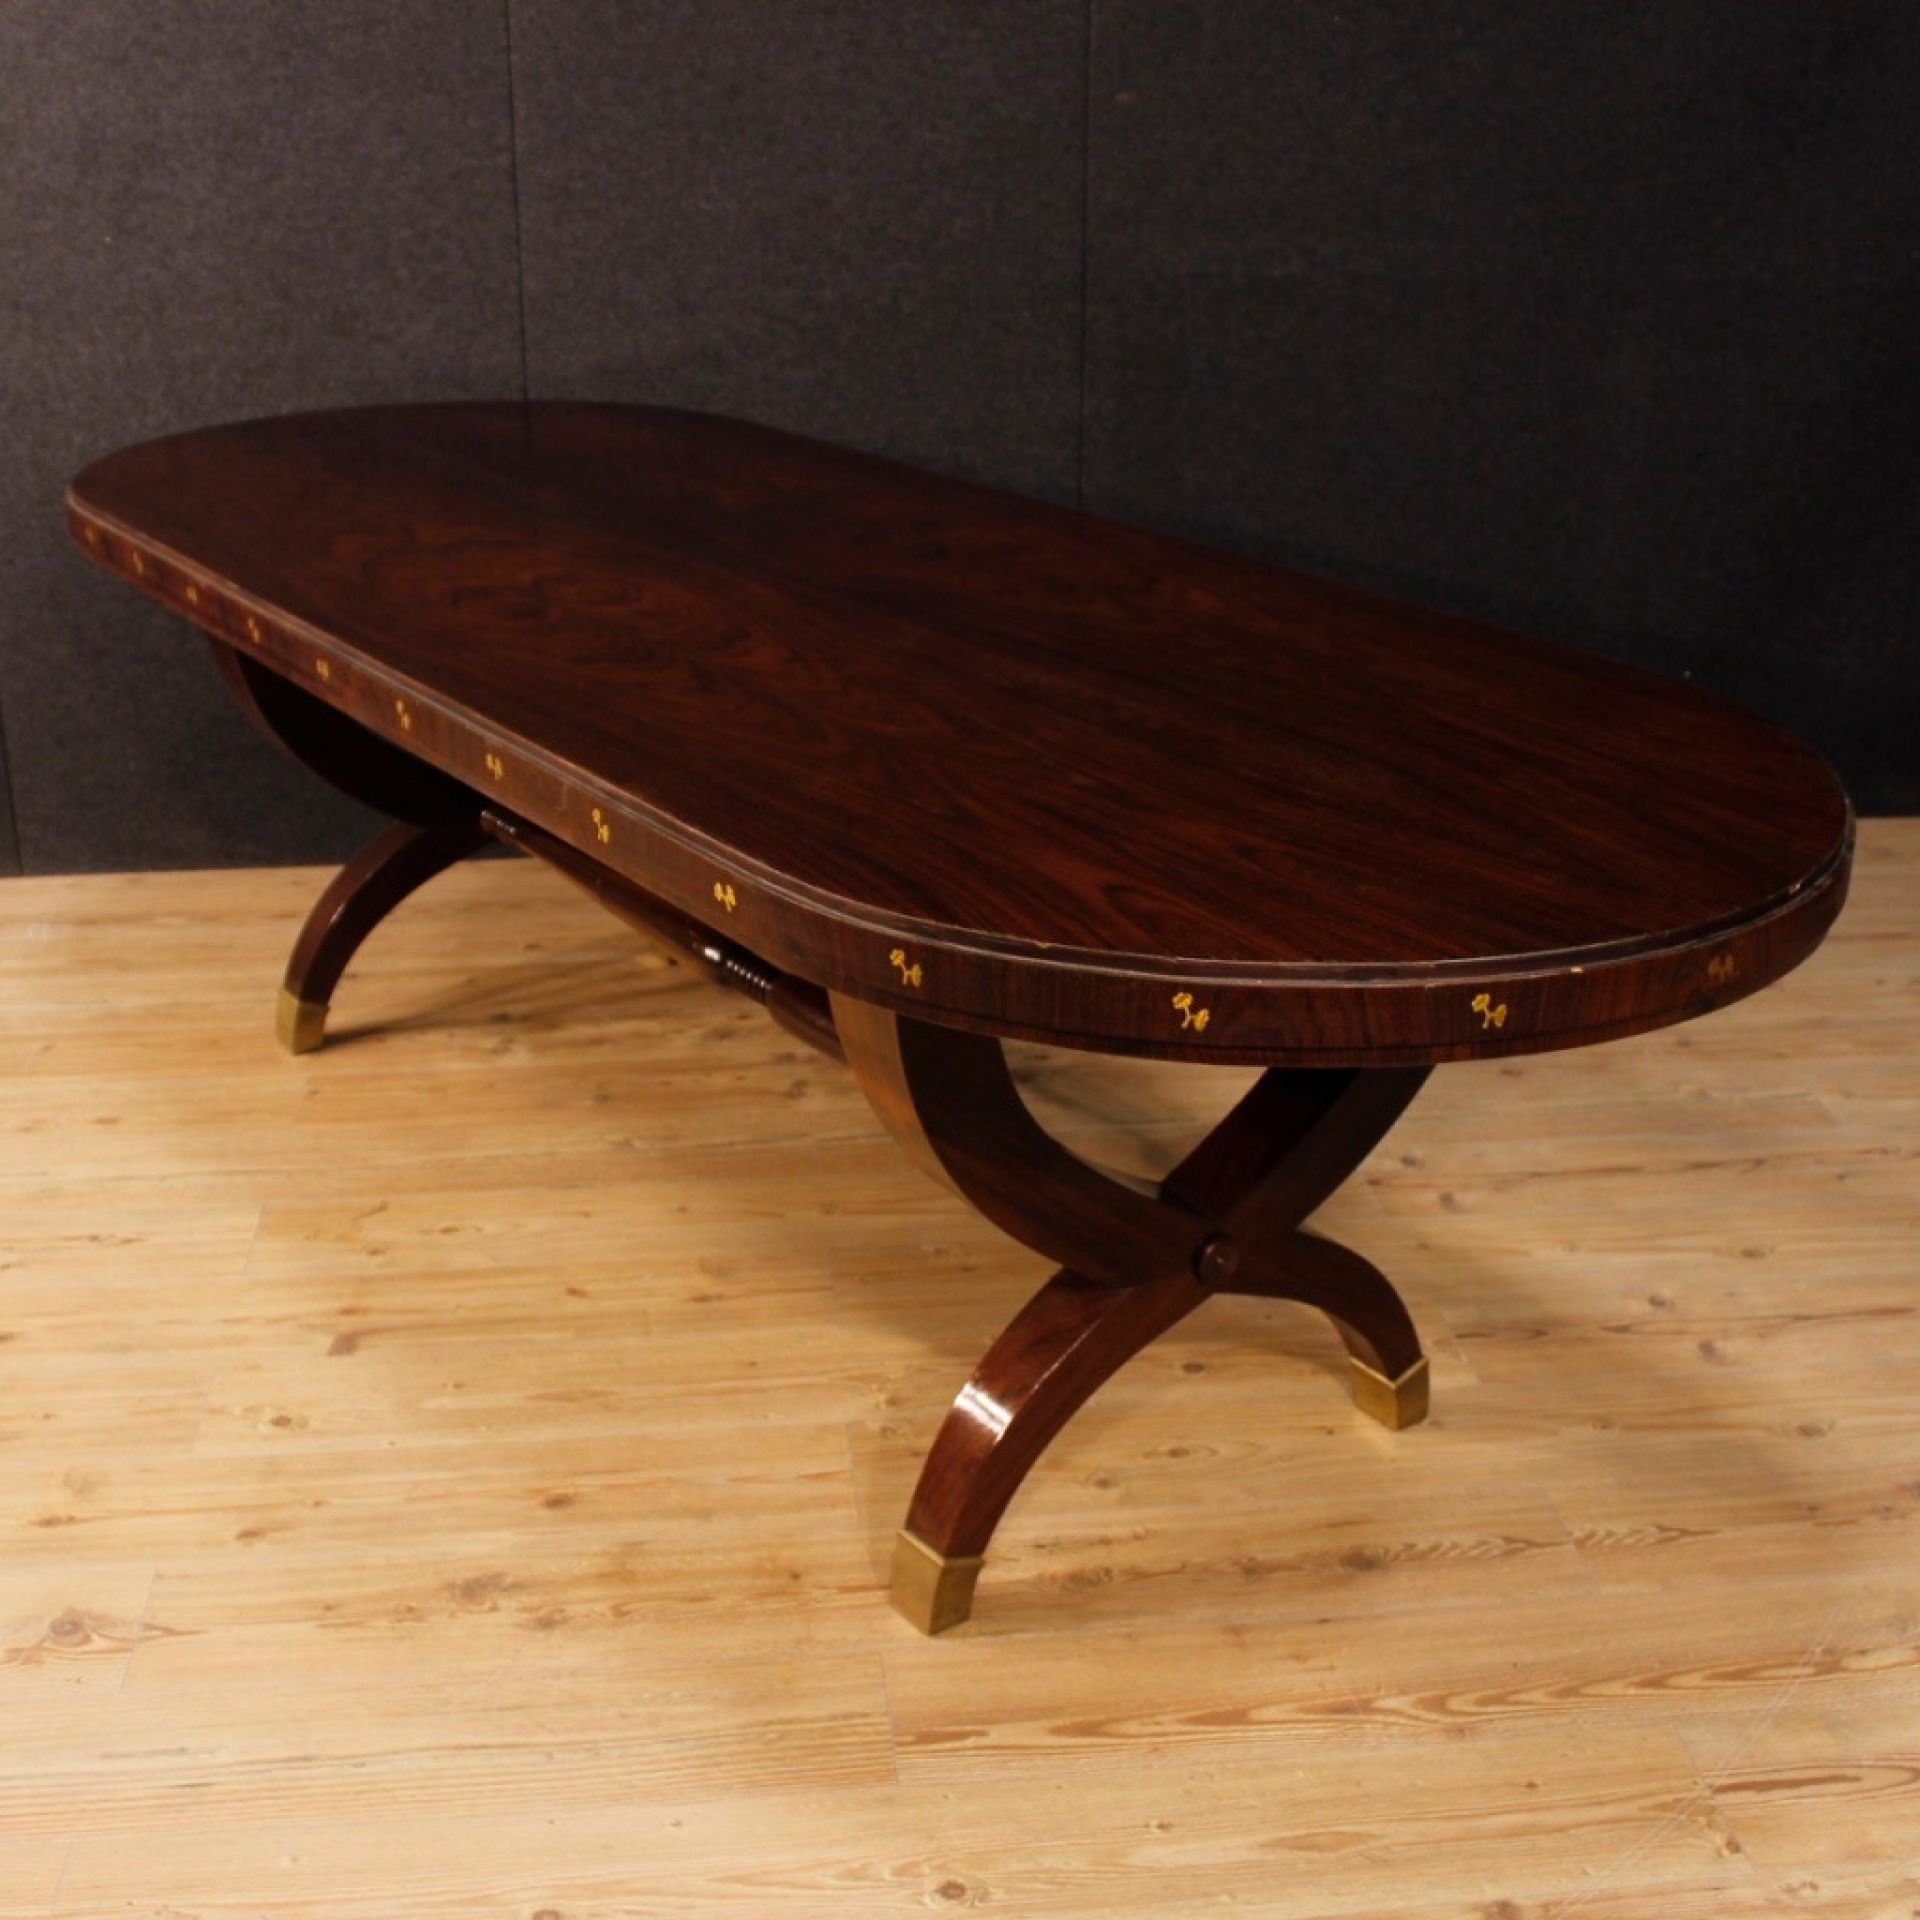 Paolo Buffa 20th Century Oval Palisander Wood Italian Design Dining Table, 1950